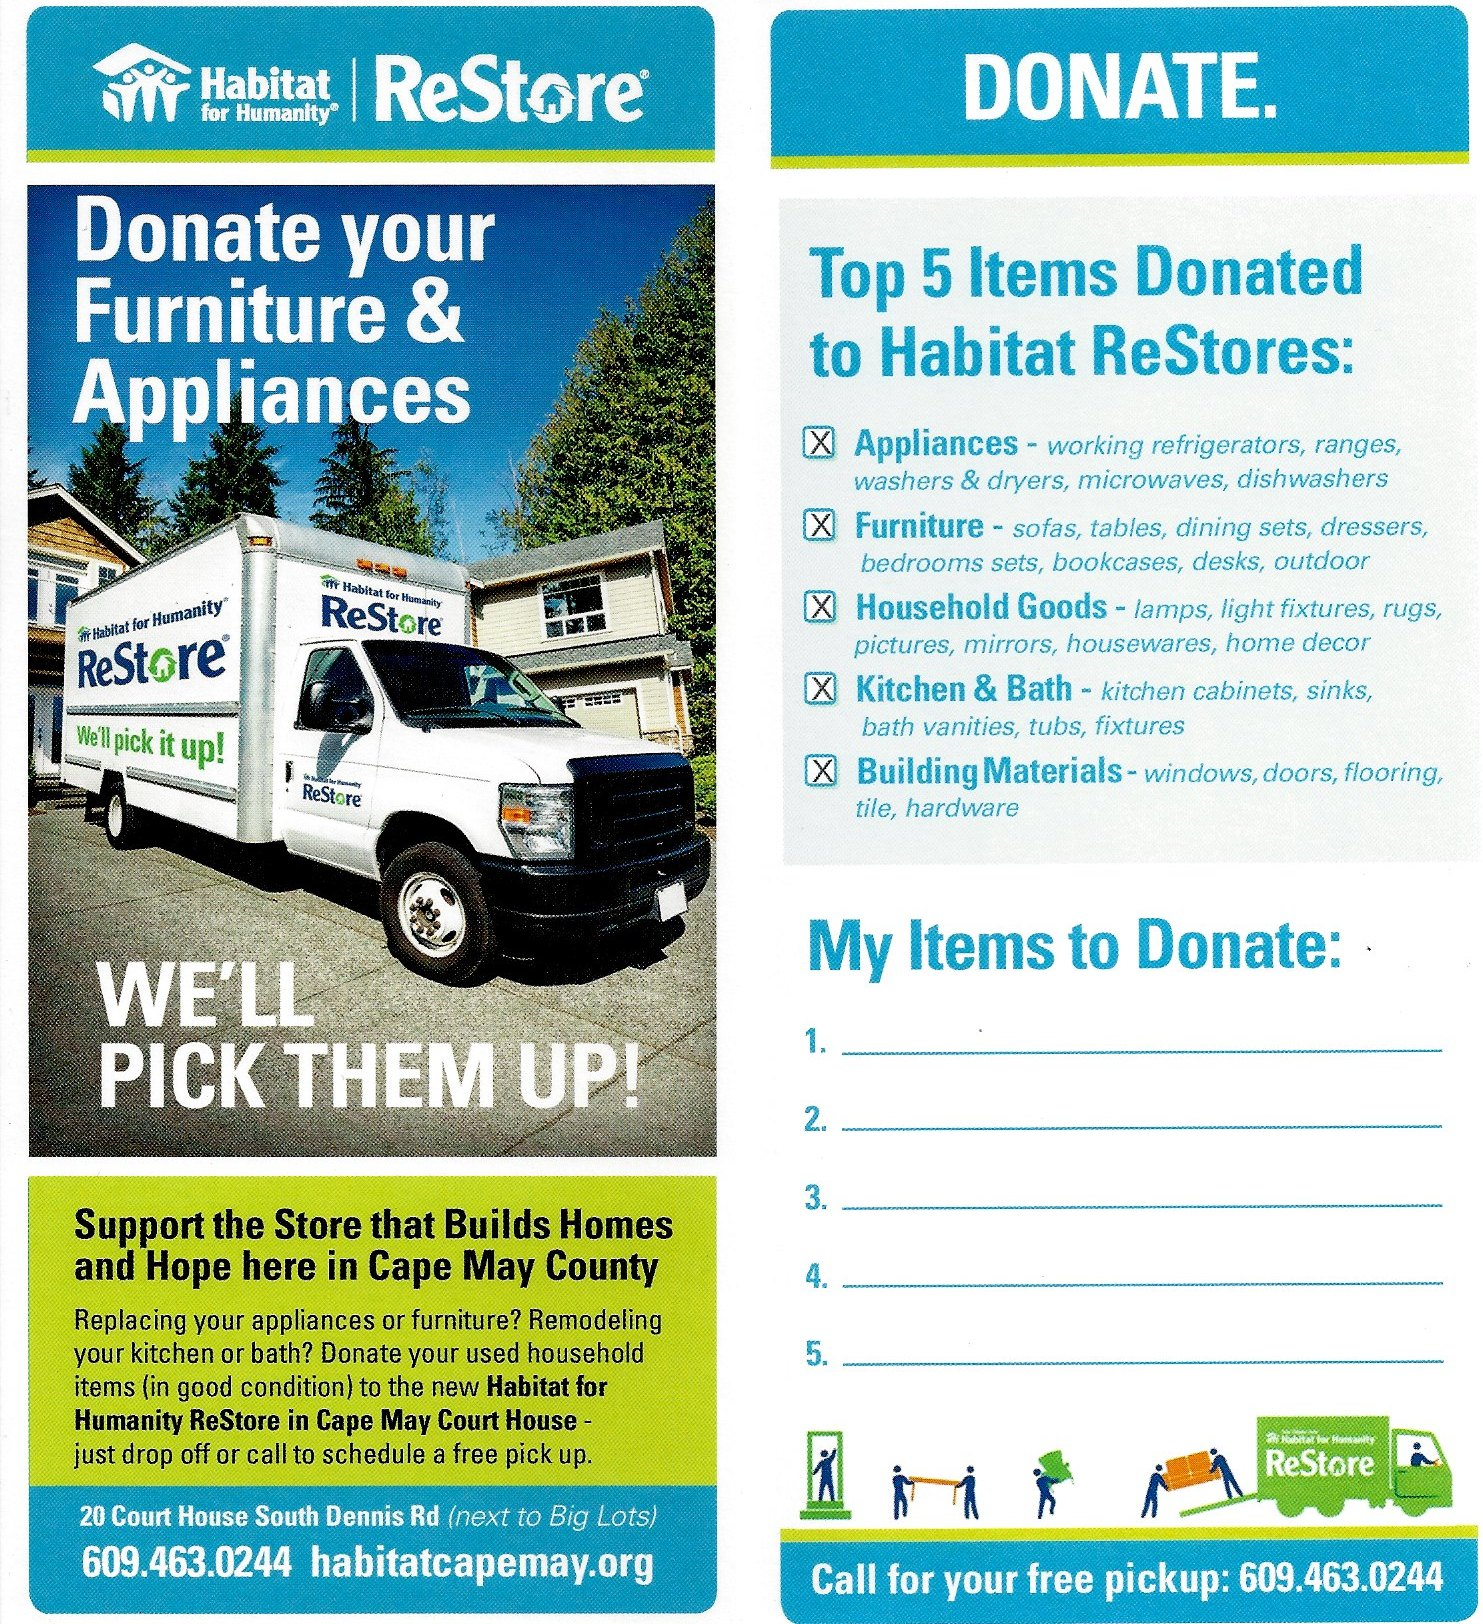 Habitat For Humanity Restore Donate Furniture